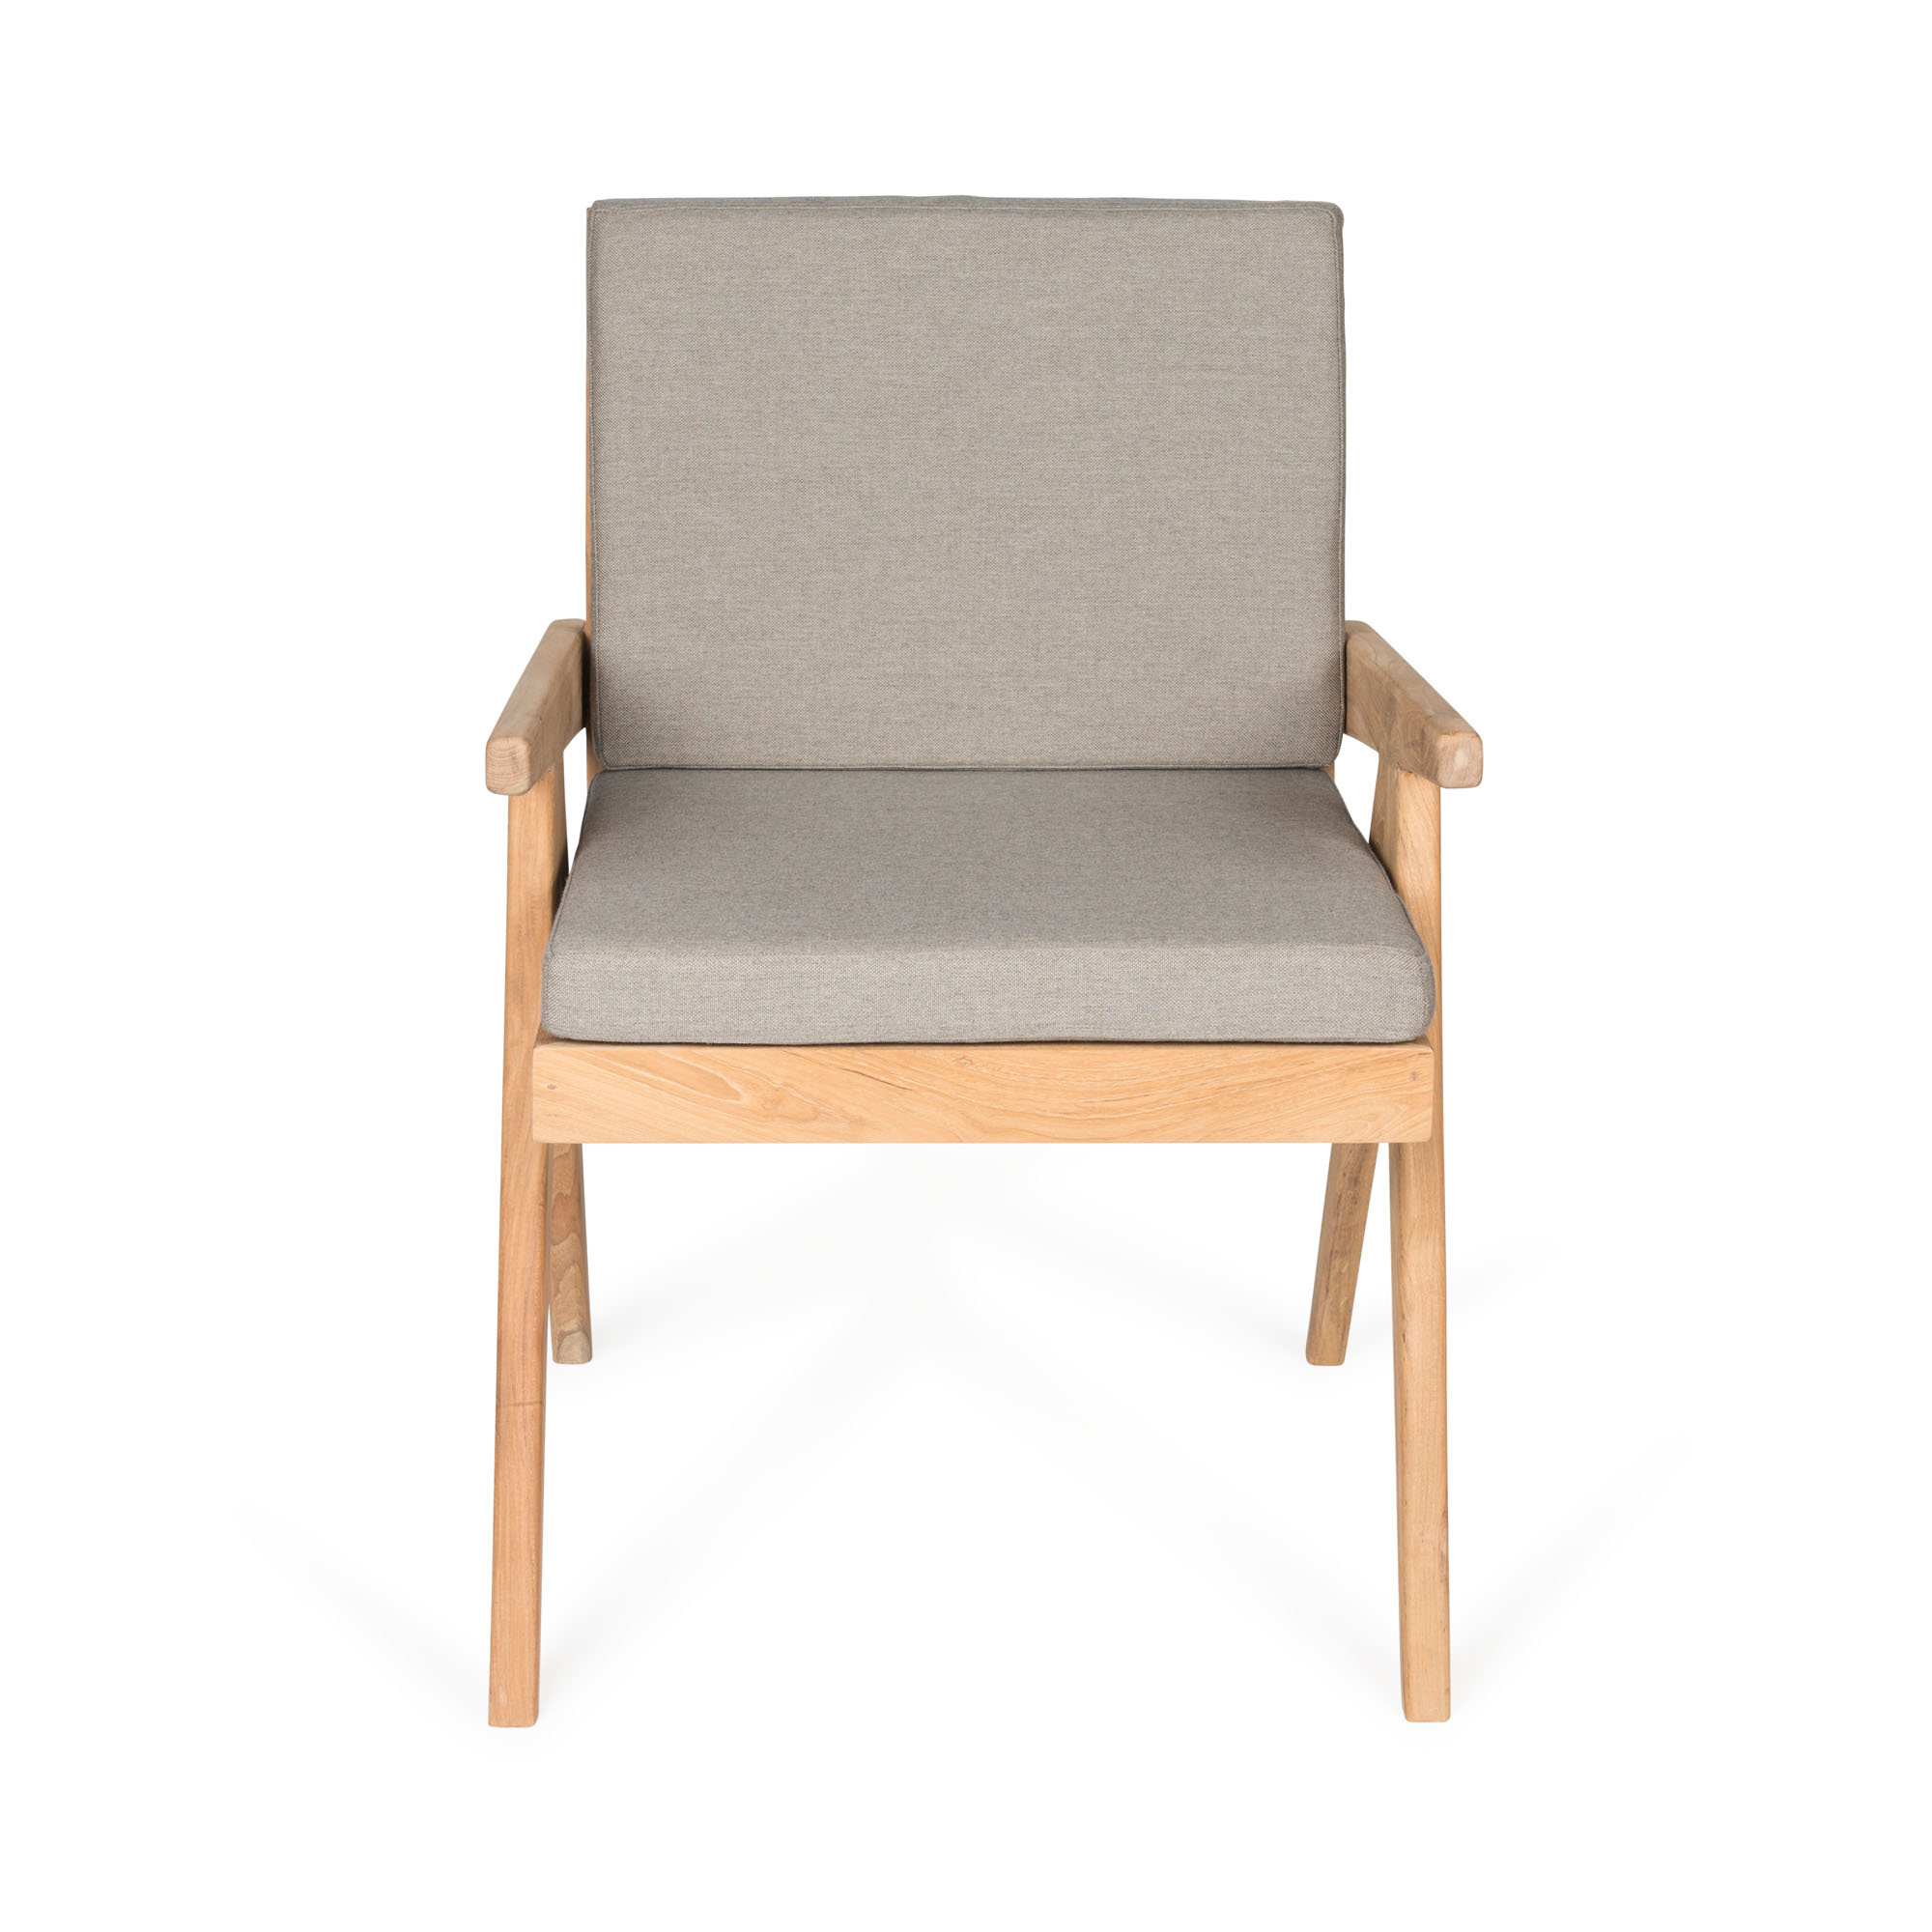 Dining Easy Lounge  Chair - Teak Outdoor with Cushion-4